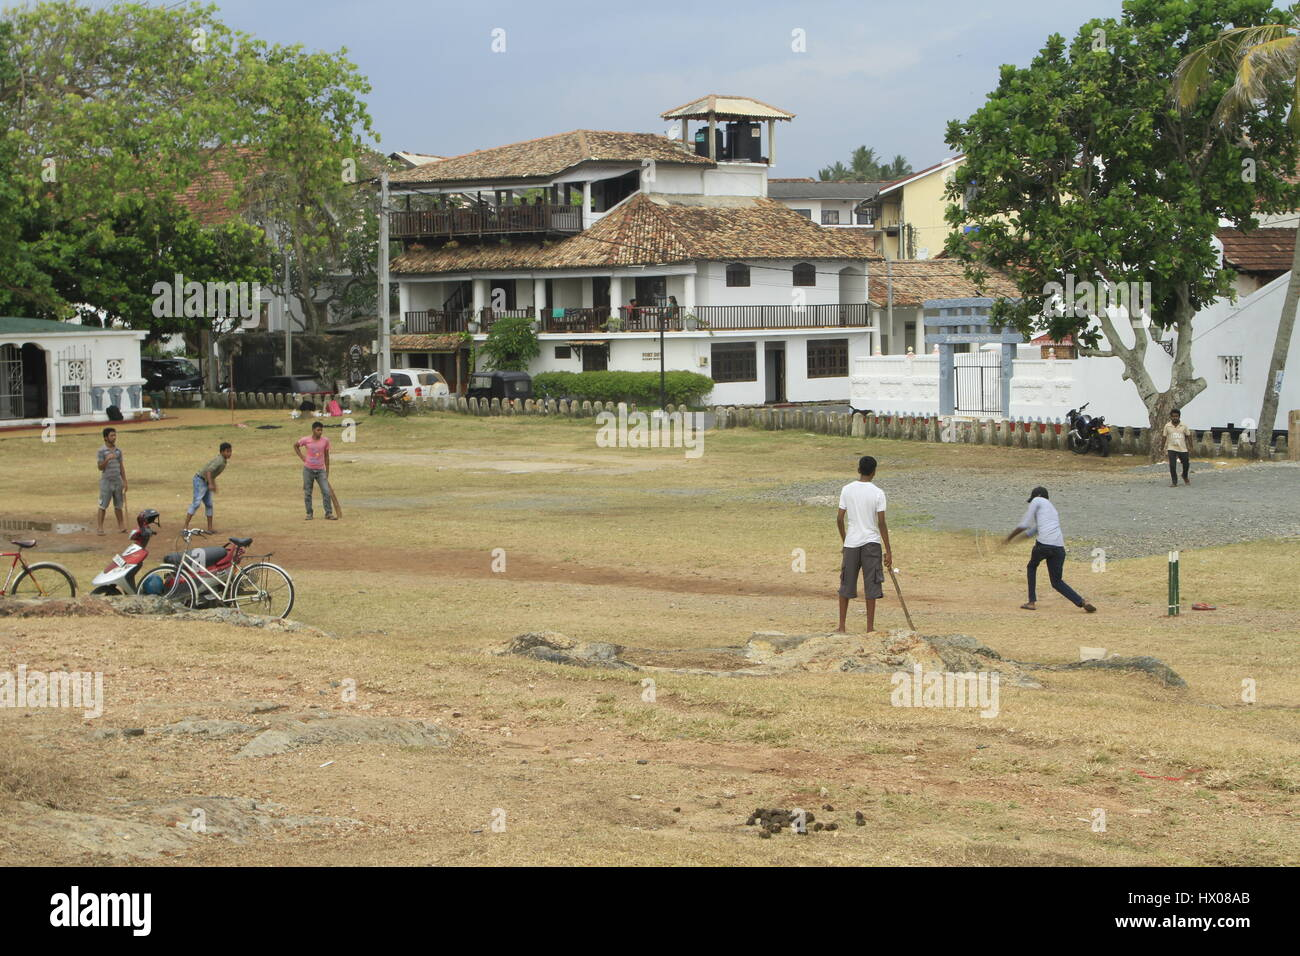 Pickup Cricket game, Galle - Stock Image